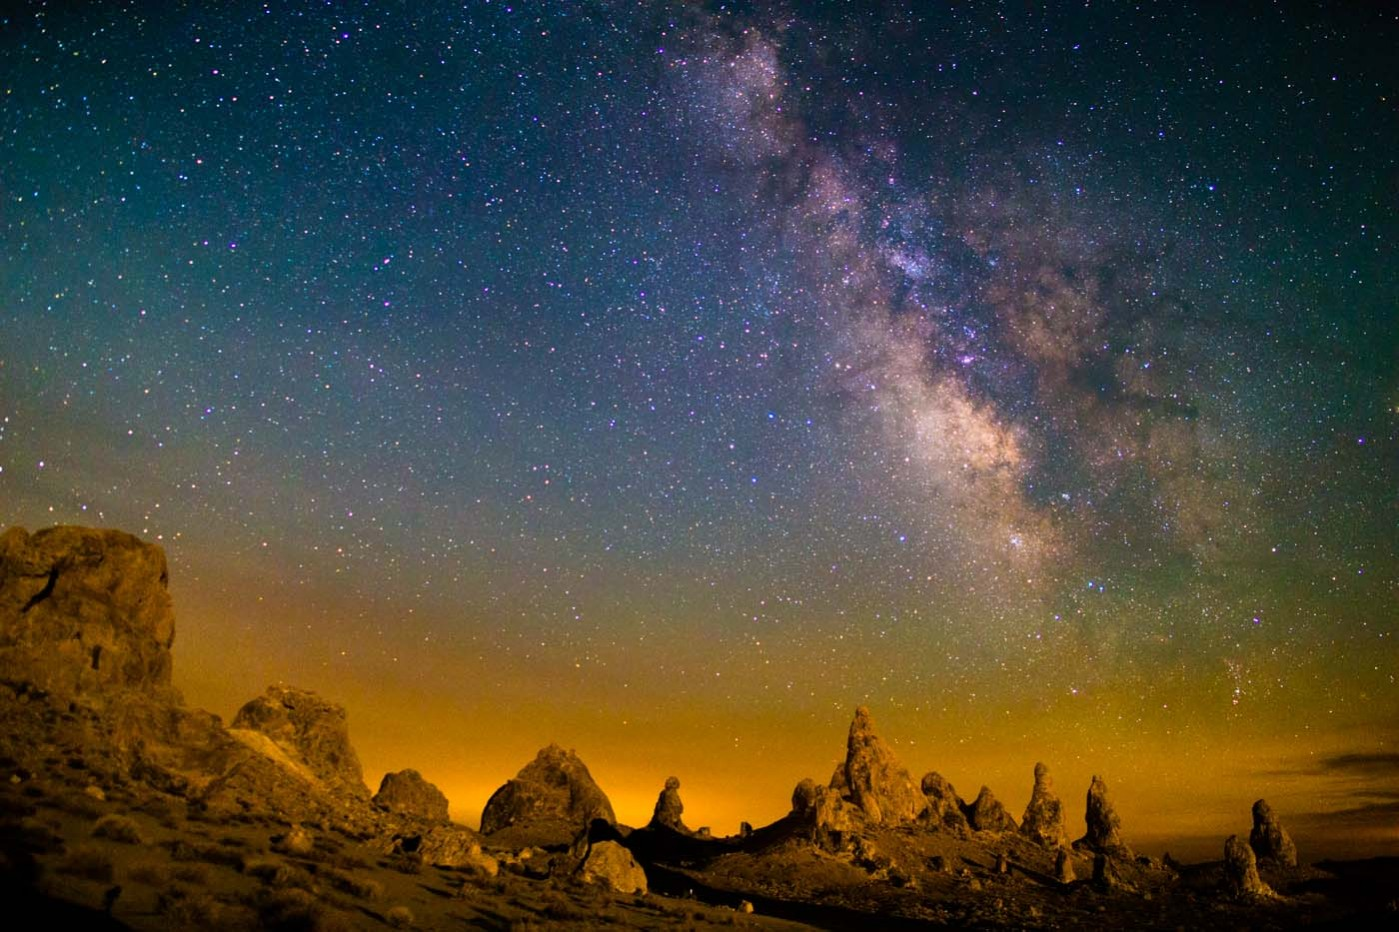 Canon EOS 6D Milky Way from Trona Pinnacles